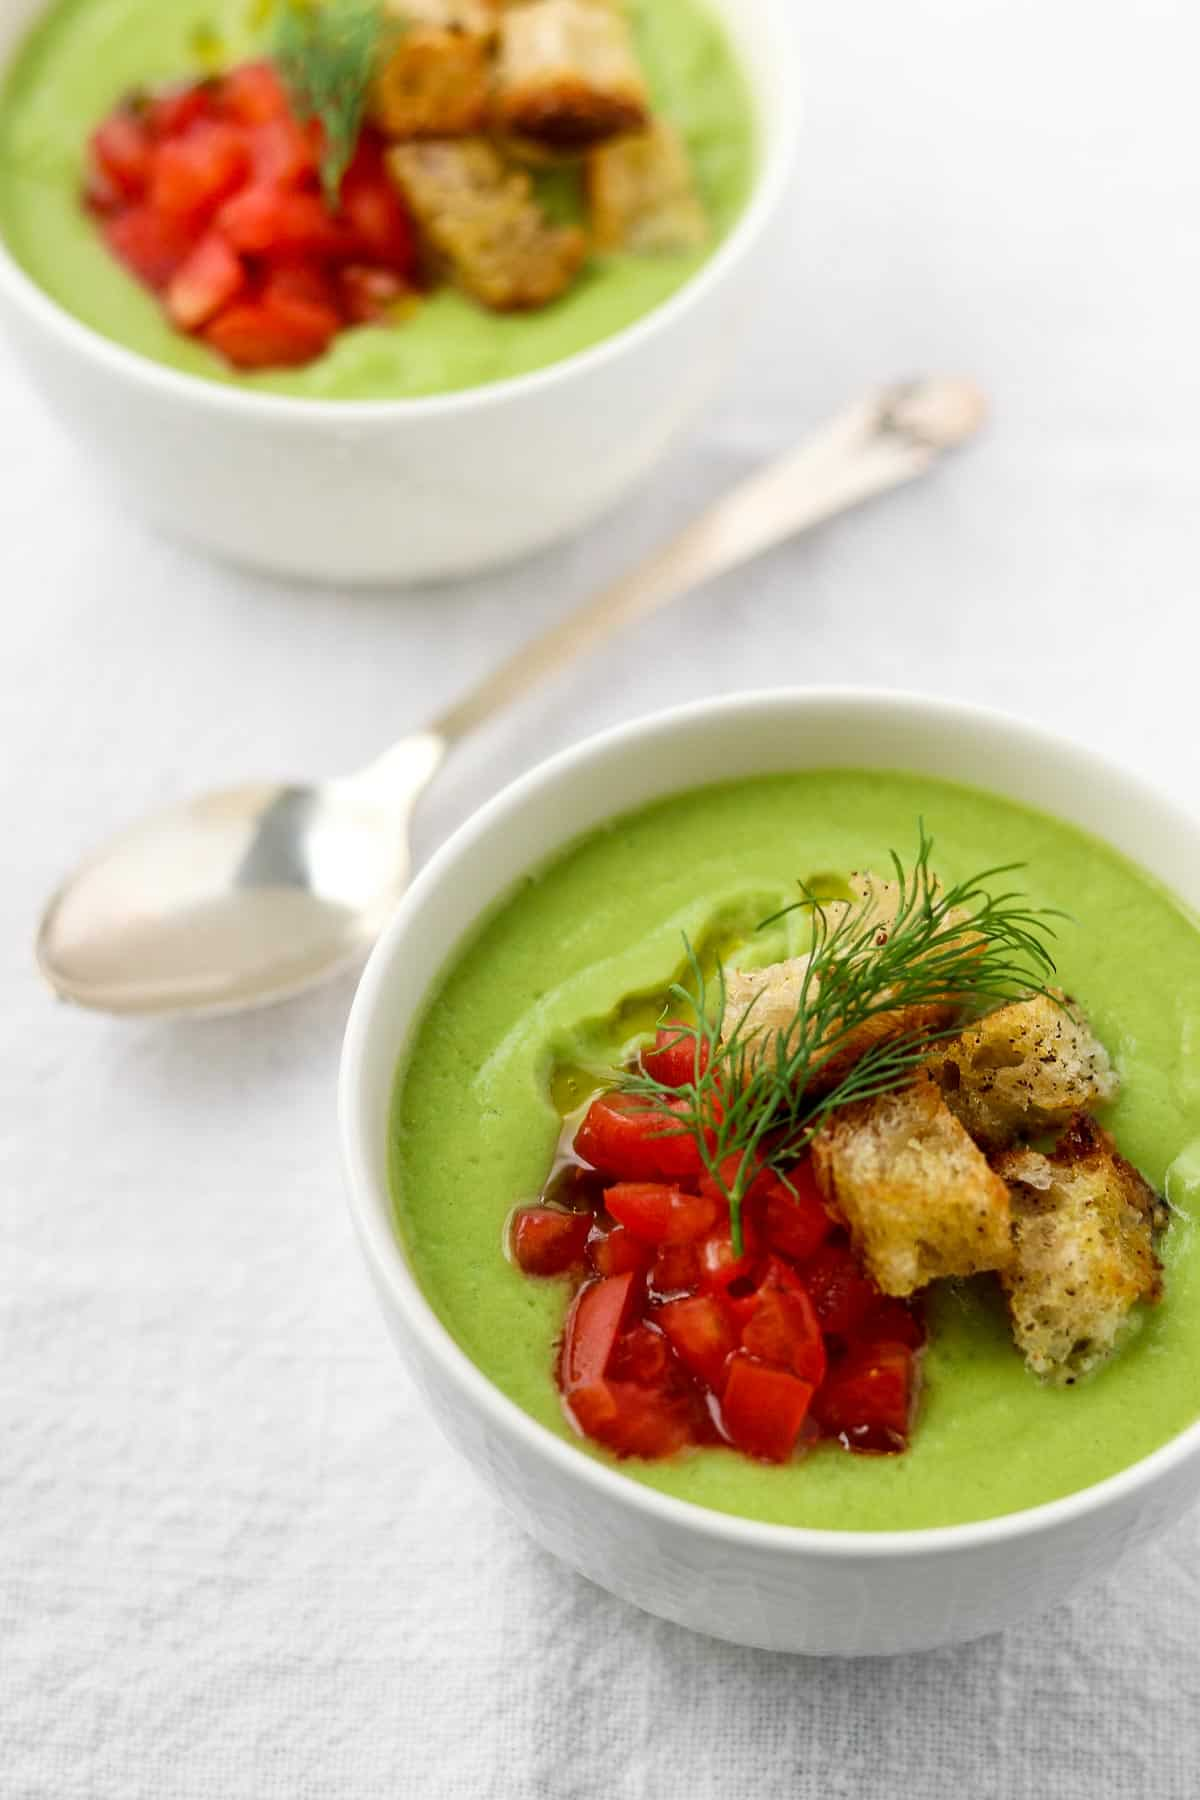 Two bowls of chilled cucumber soup with tomatoes, croutons and dill on top.